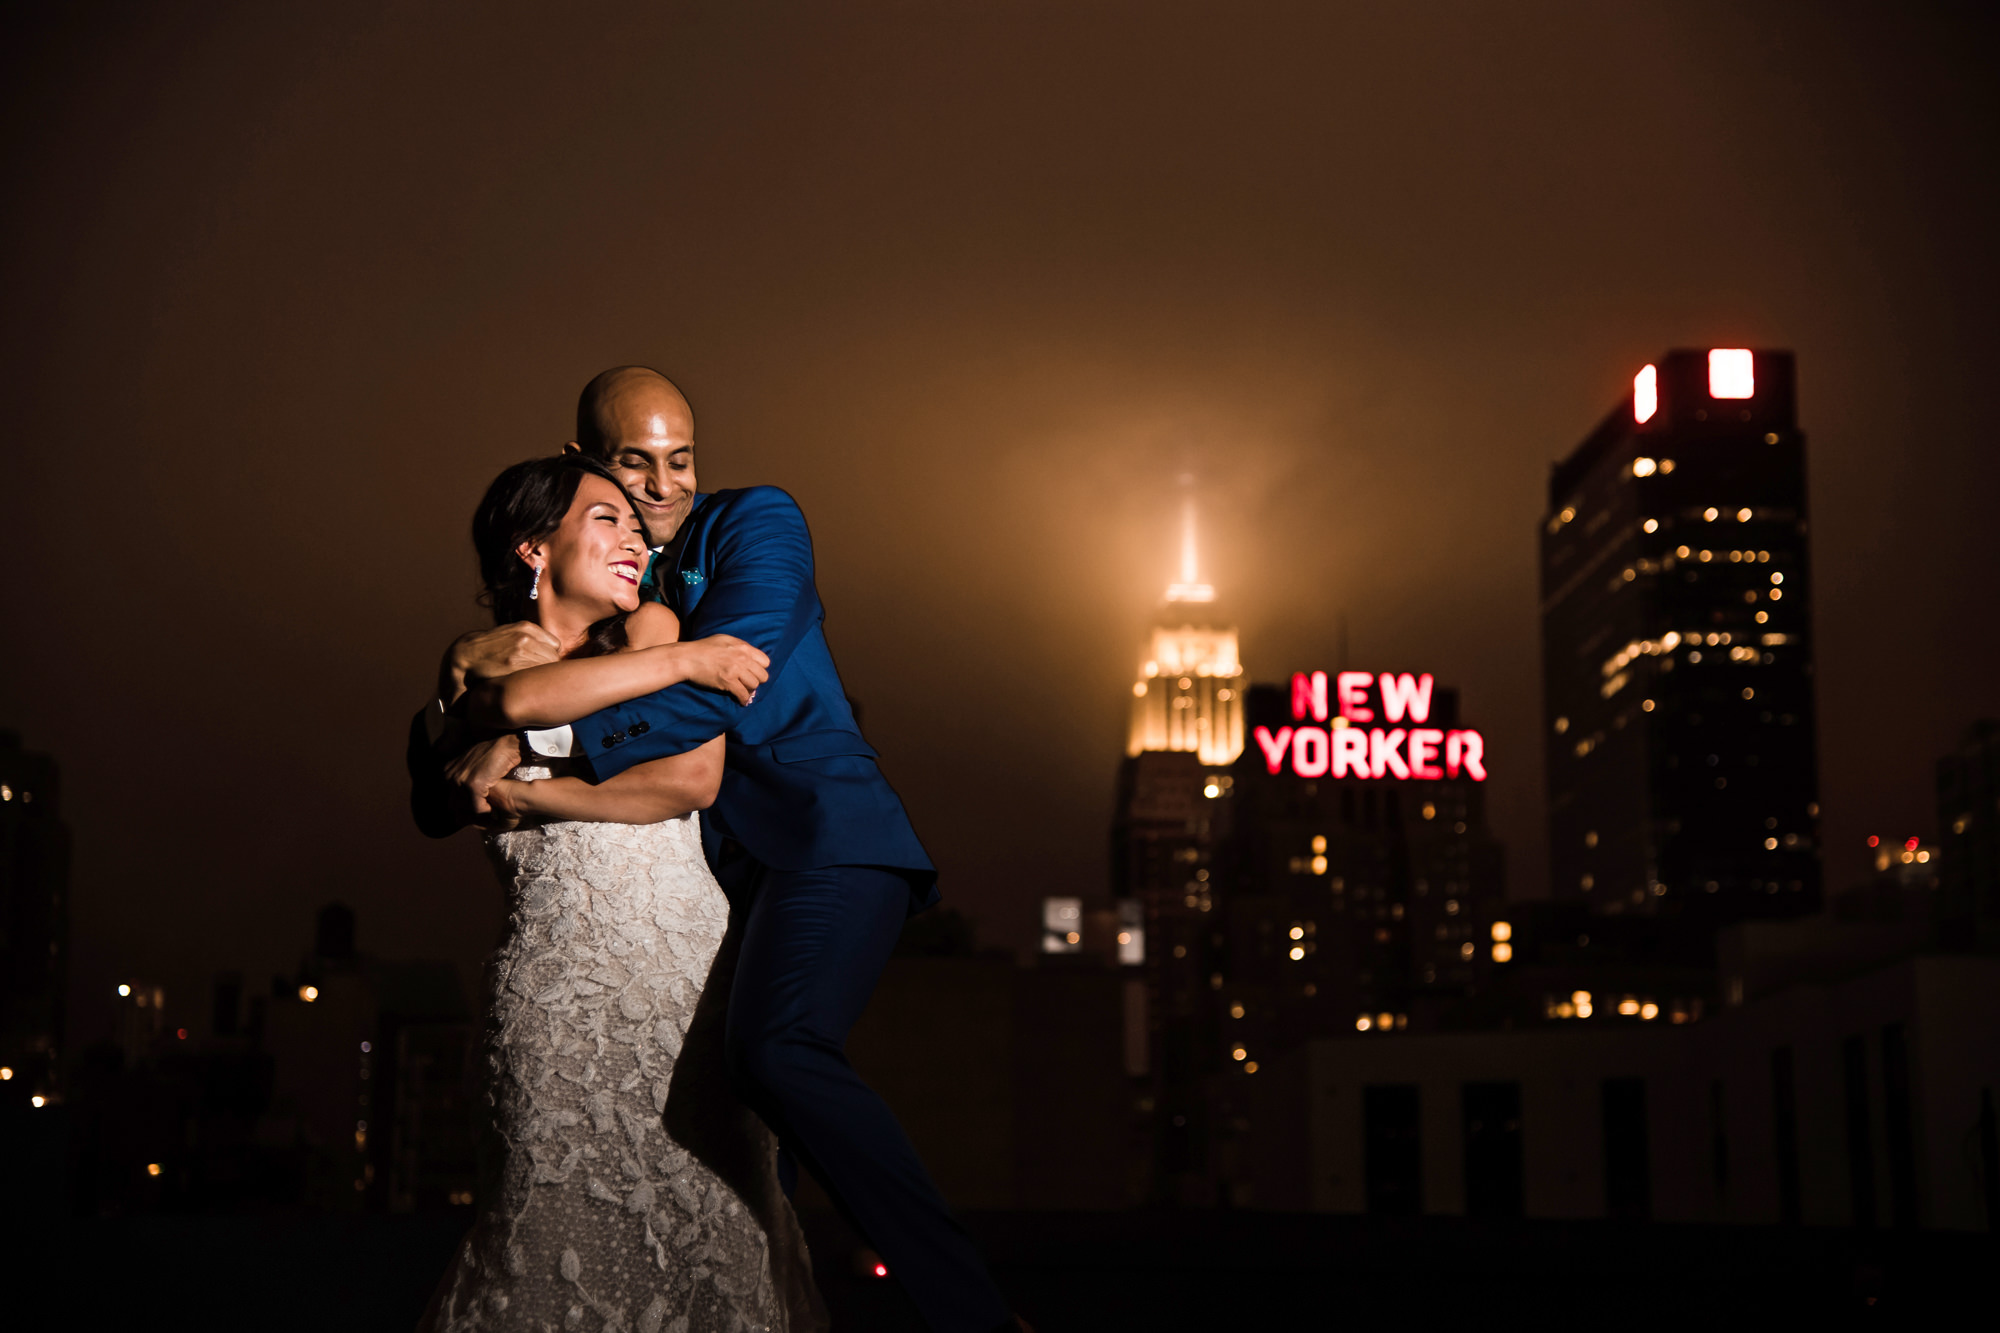 Asian bride and groom hug with New Yorker building in background, by Cliff Mautner